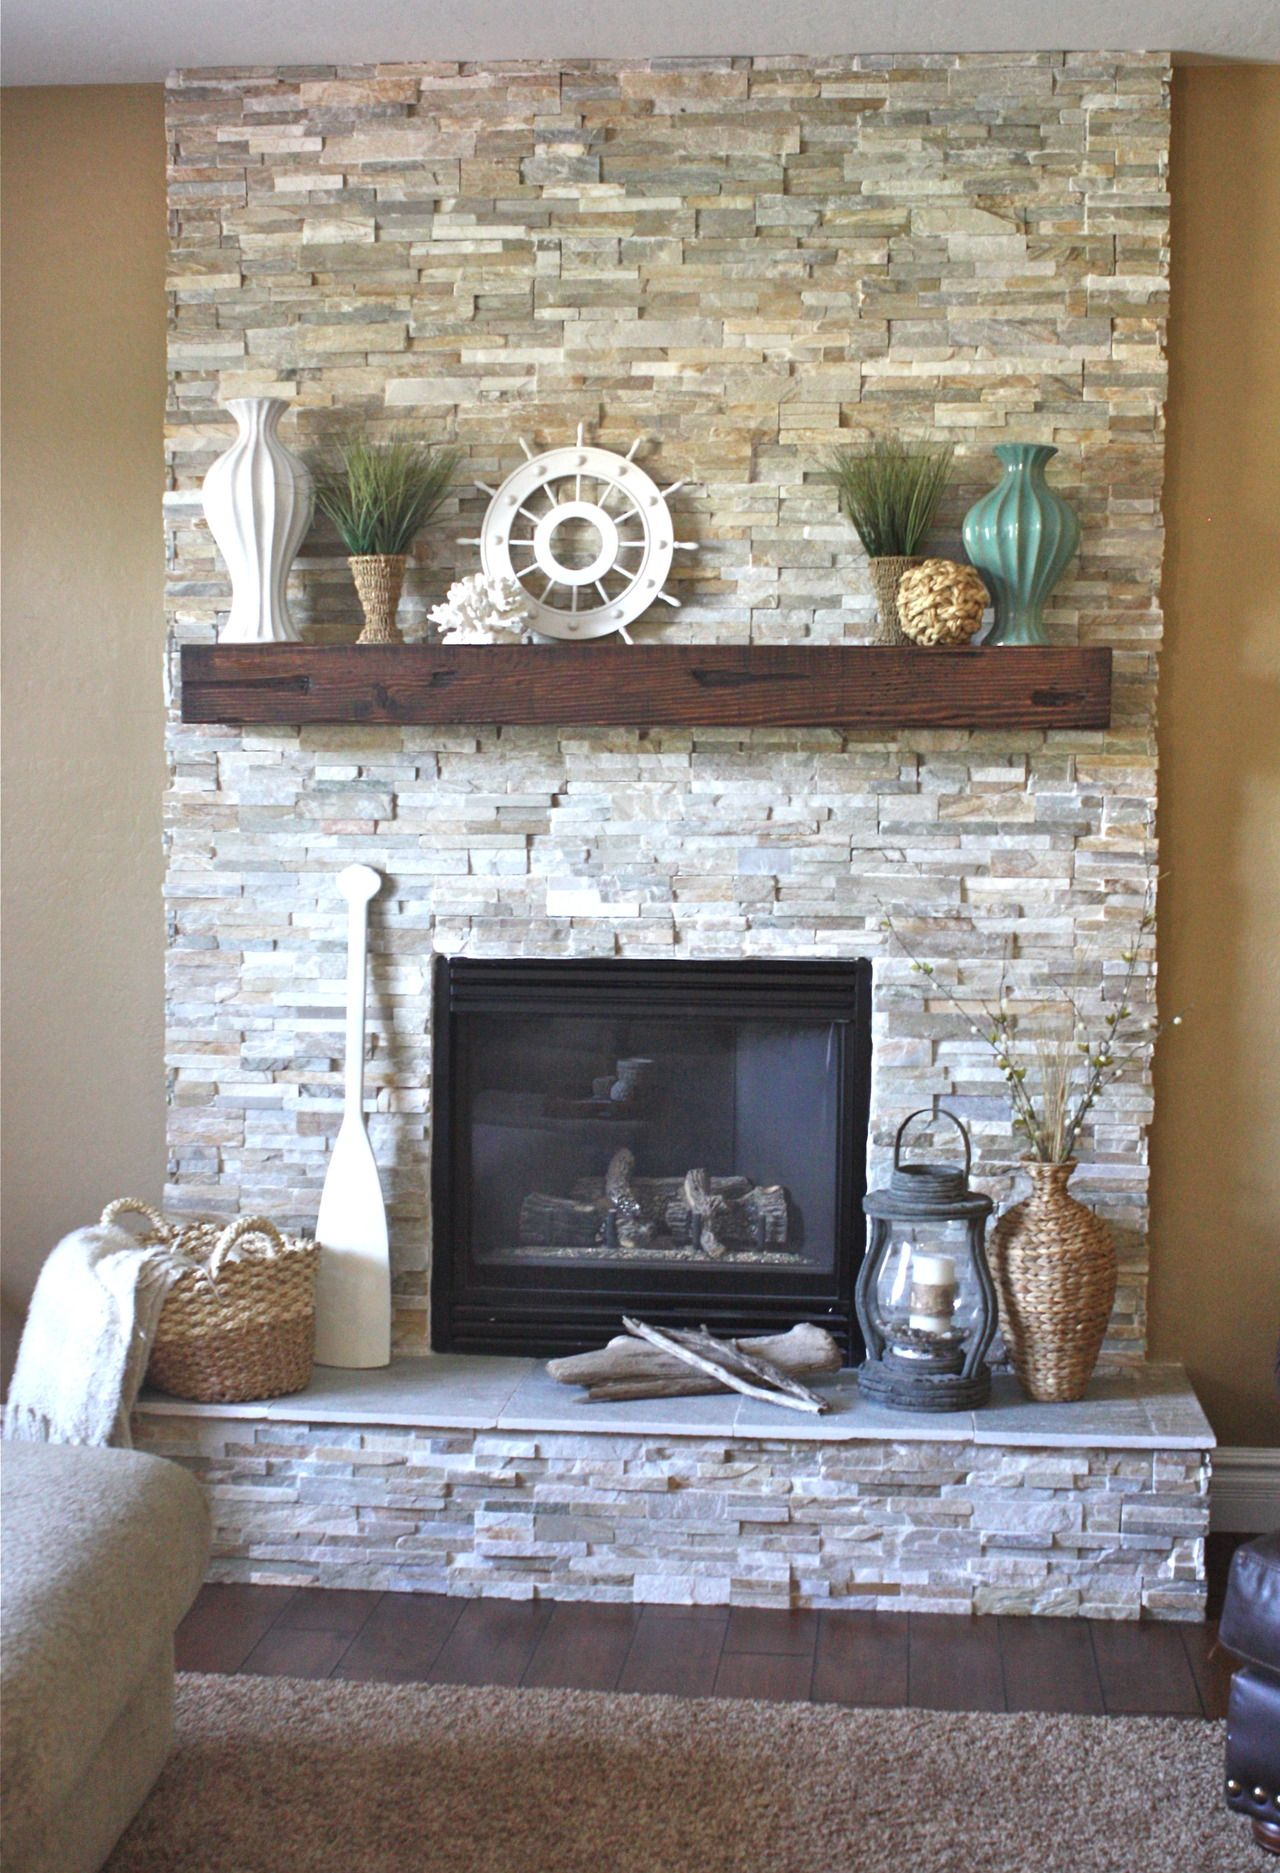 Search Results Fireplace Mantle Decorations Hearth Decor Beach Mantel